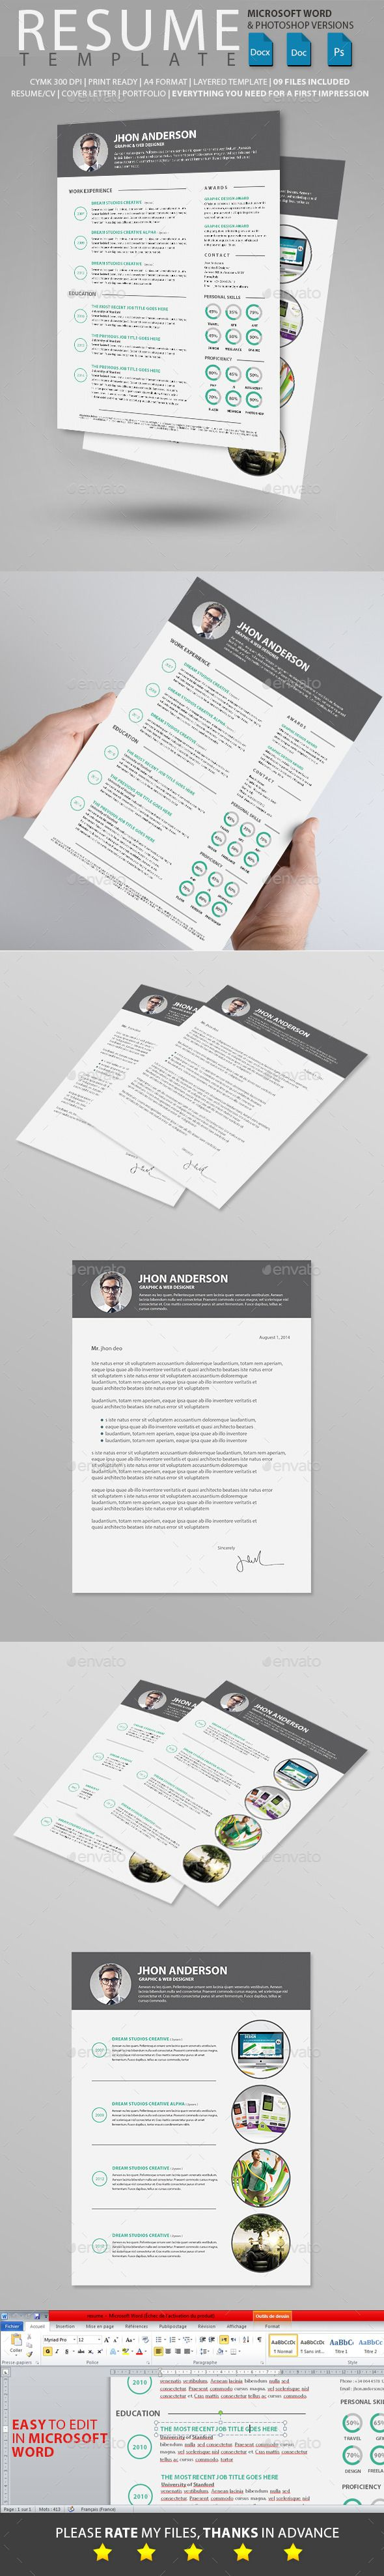 Resume Pdf Or Word Download%0A doc format resume doc format resume Resume Resumes Stationery Download here  https graphicriver net